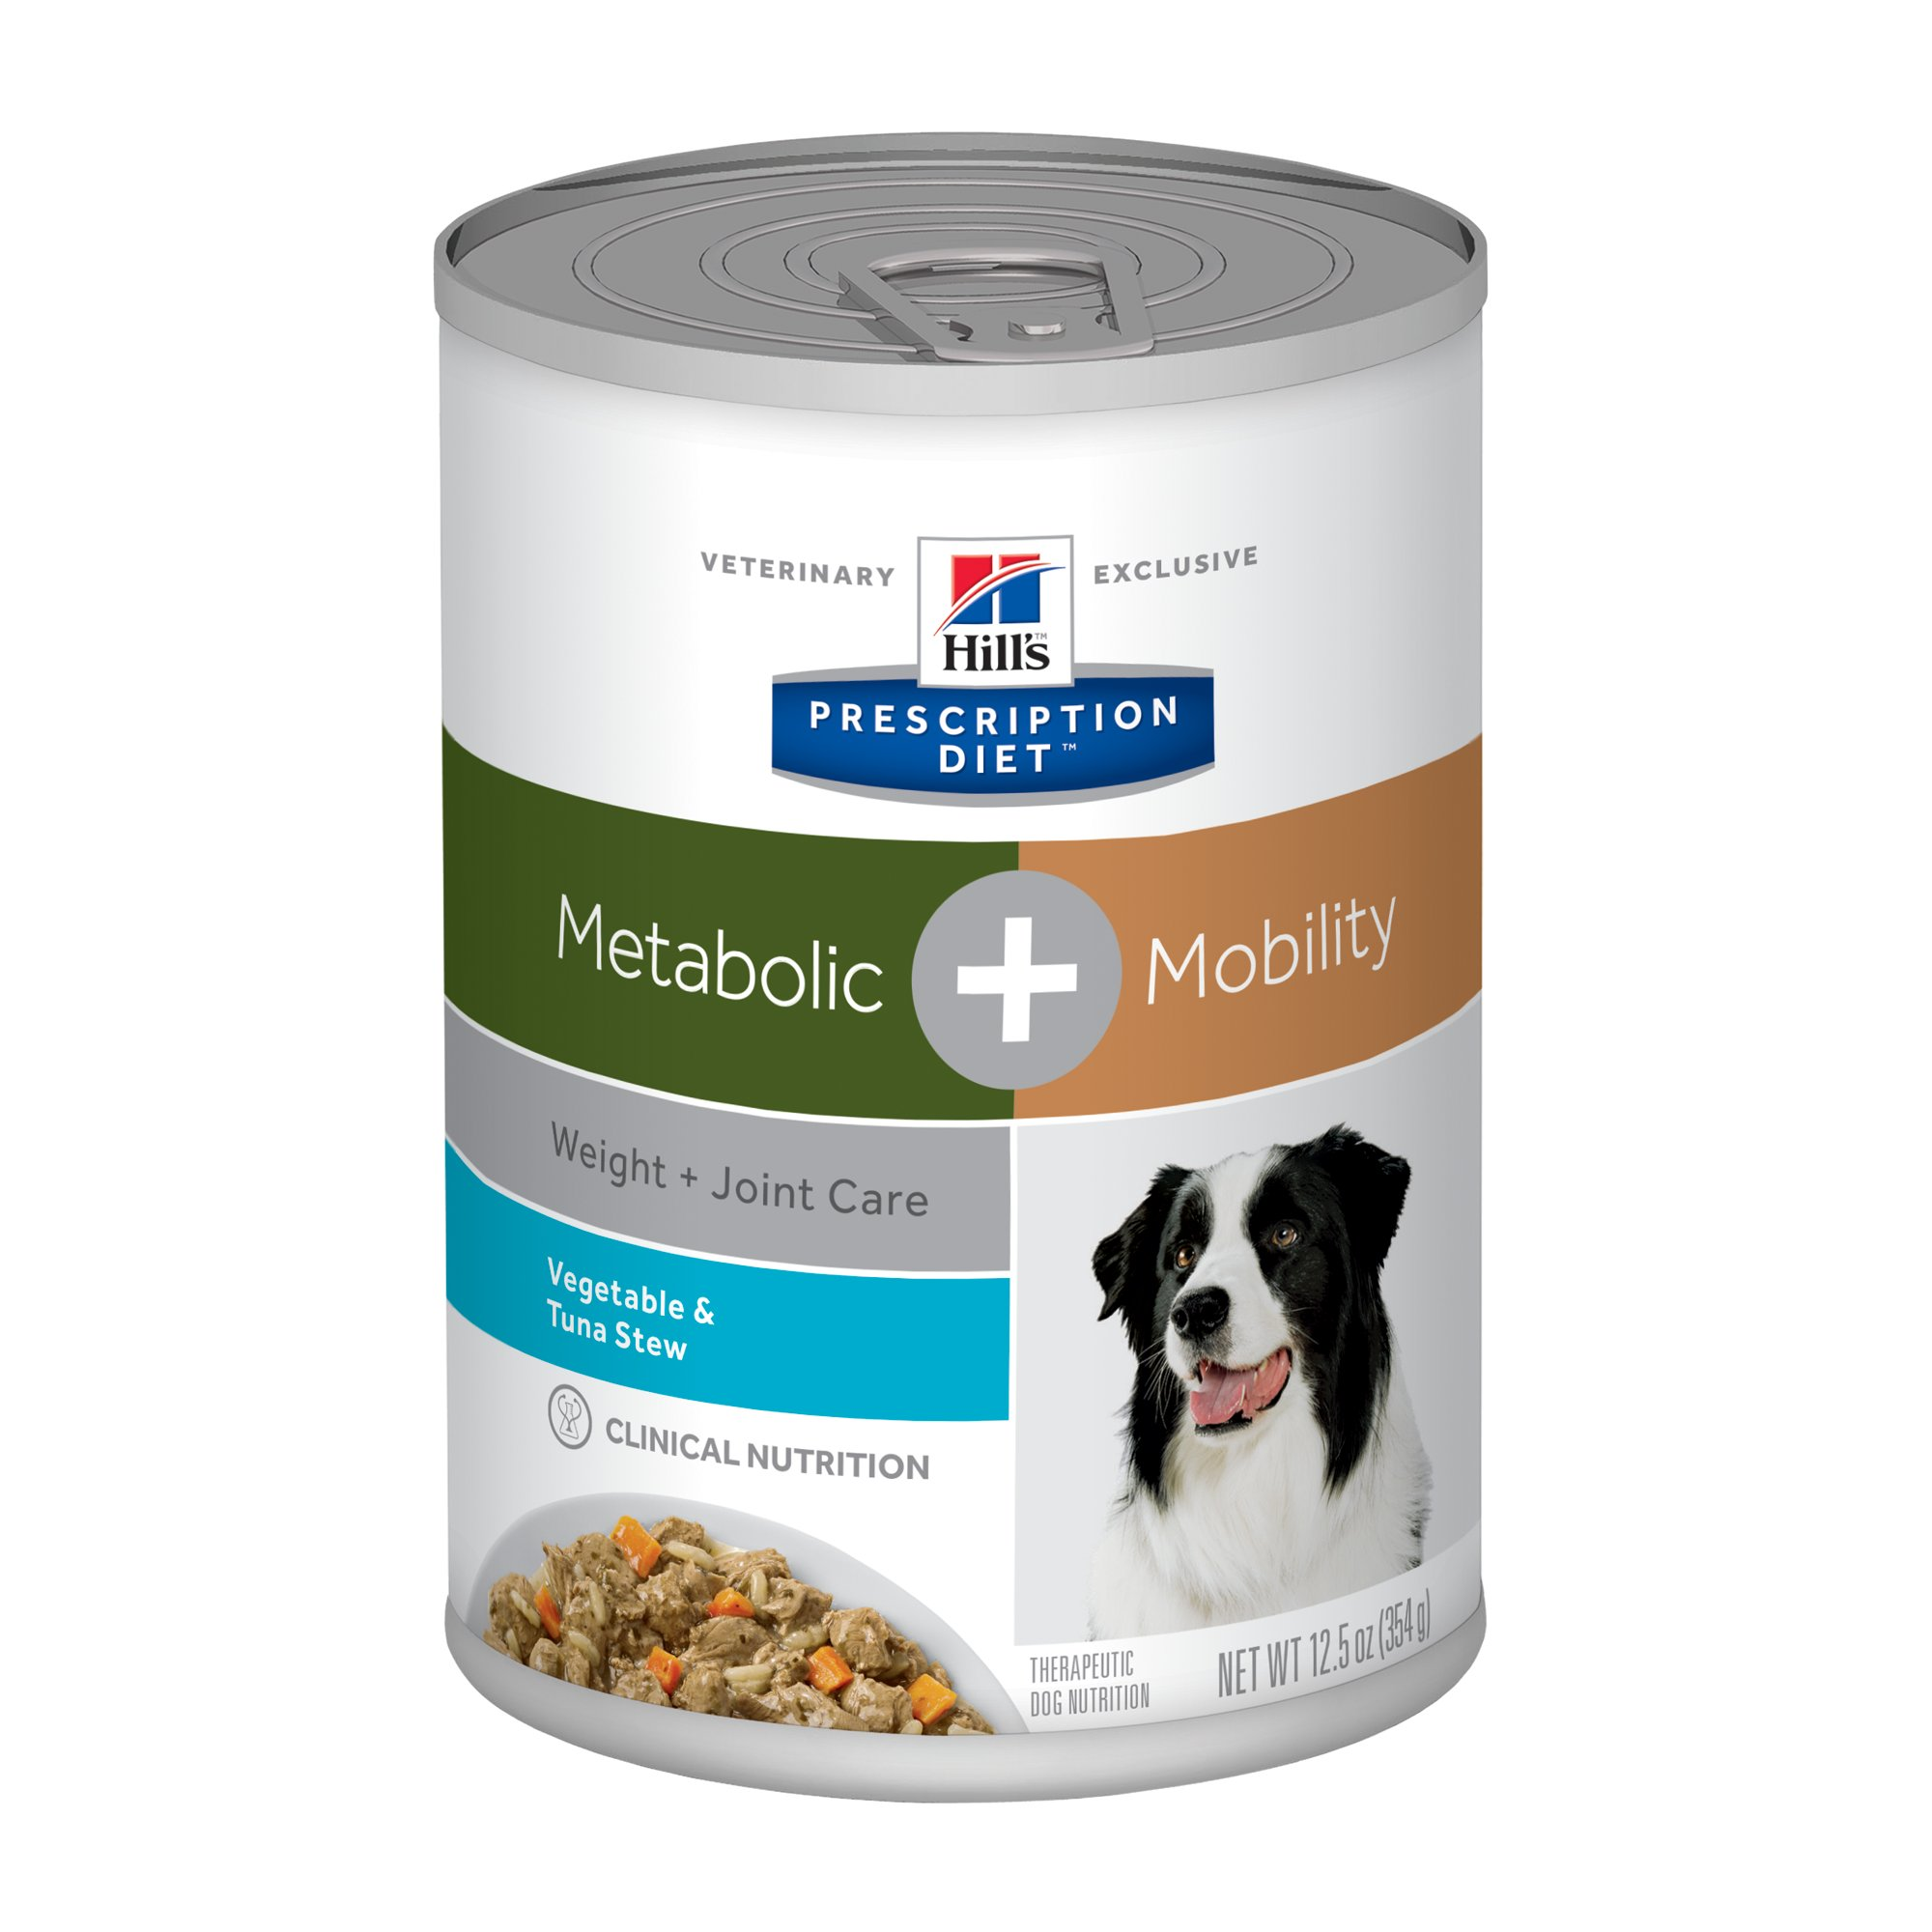 Canned Tuna Diet Food